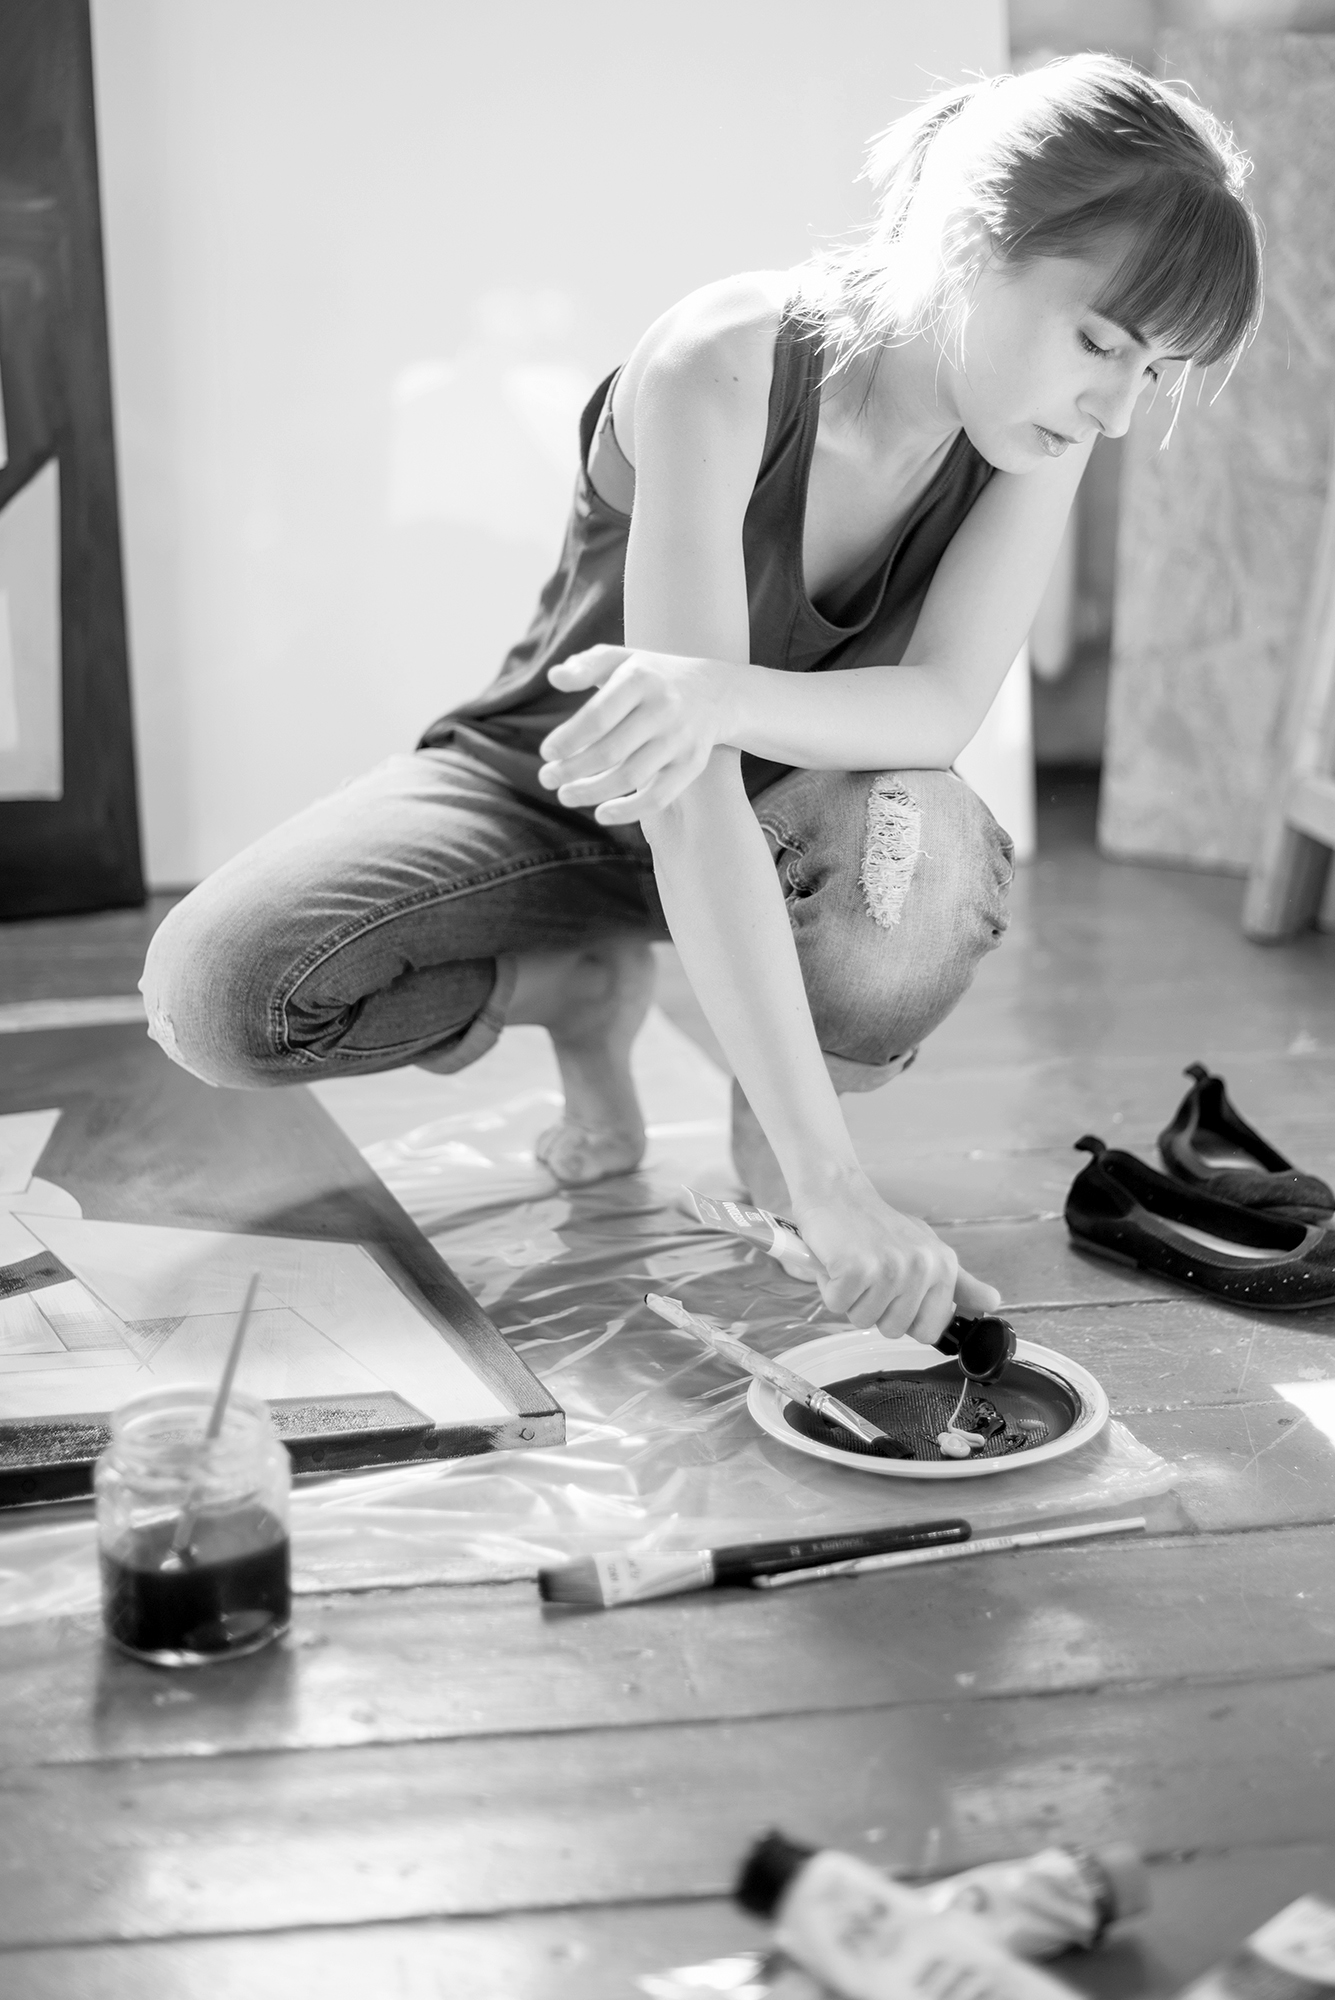 Ewa Doroszenko painting at the studio